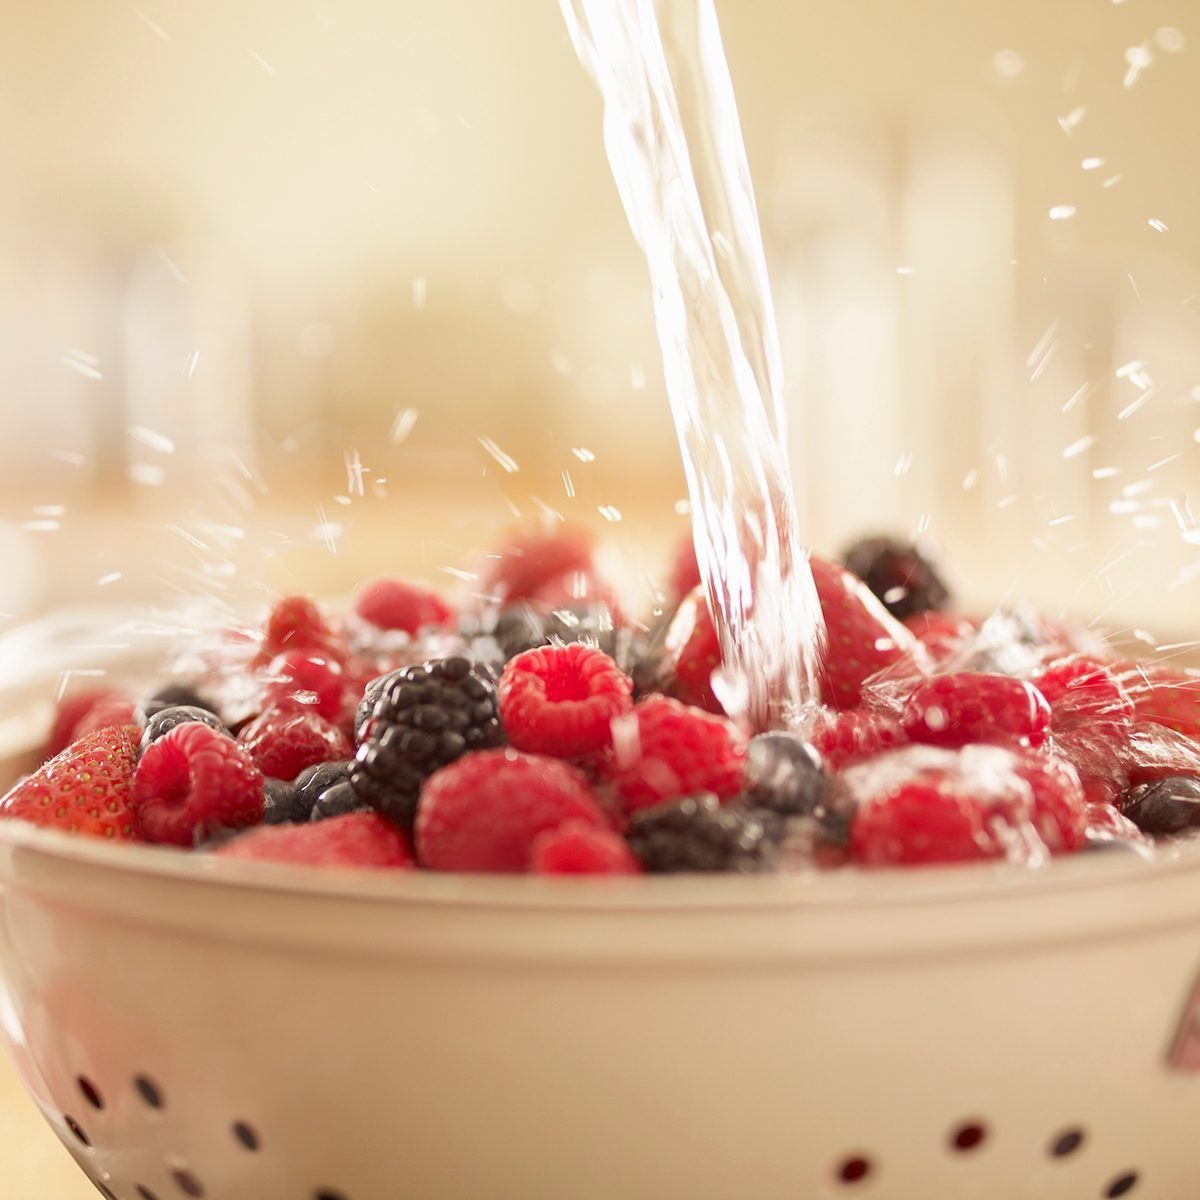 colander uses Water Splashing Over Berries In Colander